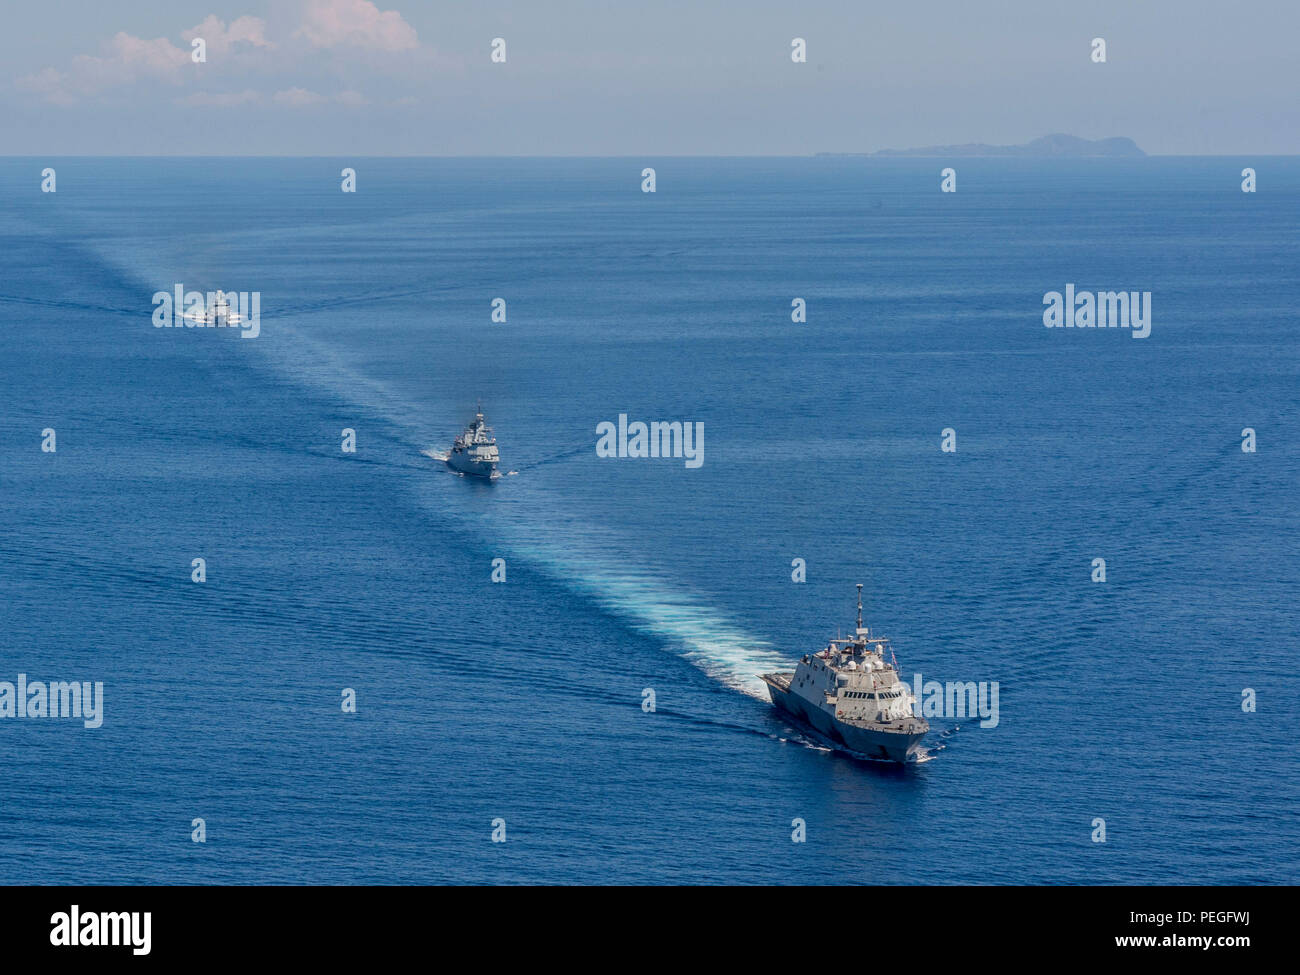 Sulu Air Stock Photos & Sulu Air Stock Images - Alamy